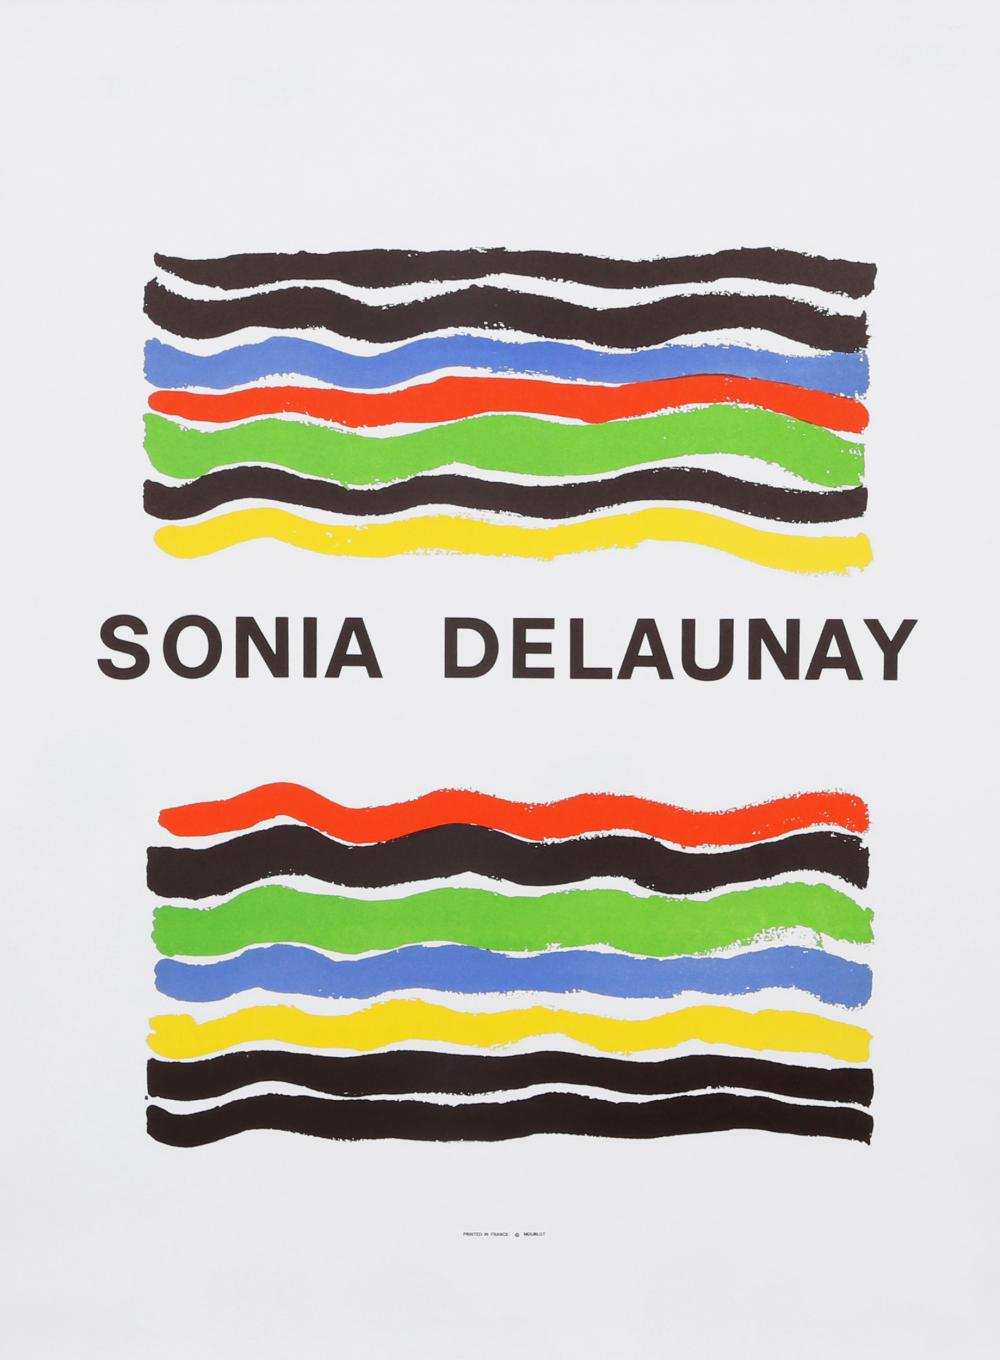 Sonia Delaunay, Mourlot, Poster